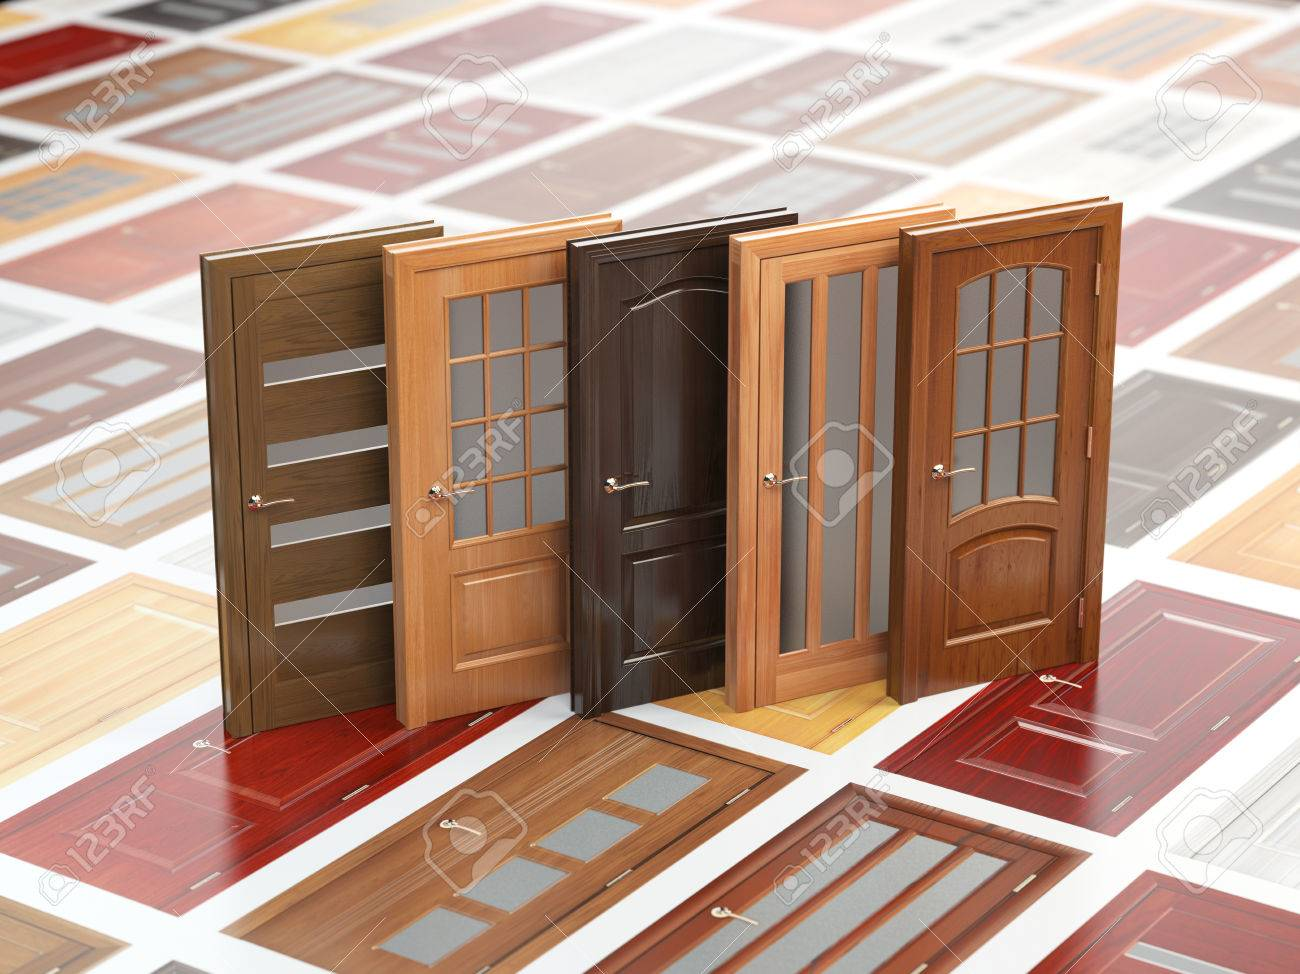 Different wooden doors on catalog with samples interior design and construction concept 3d illustration